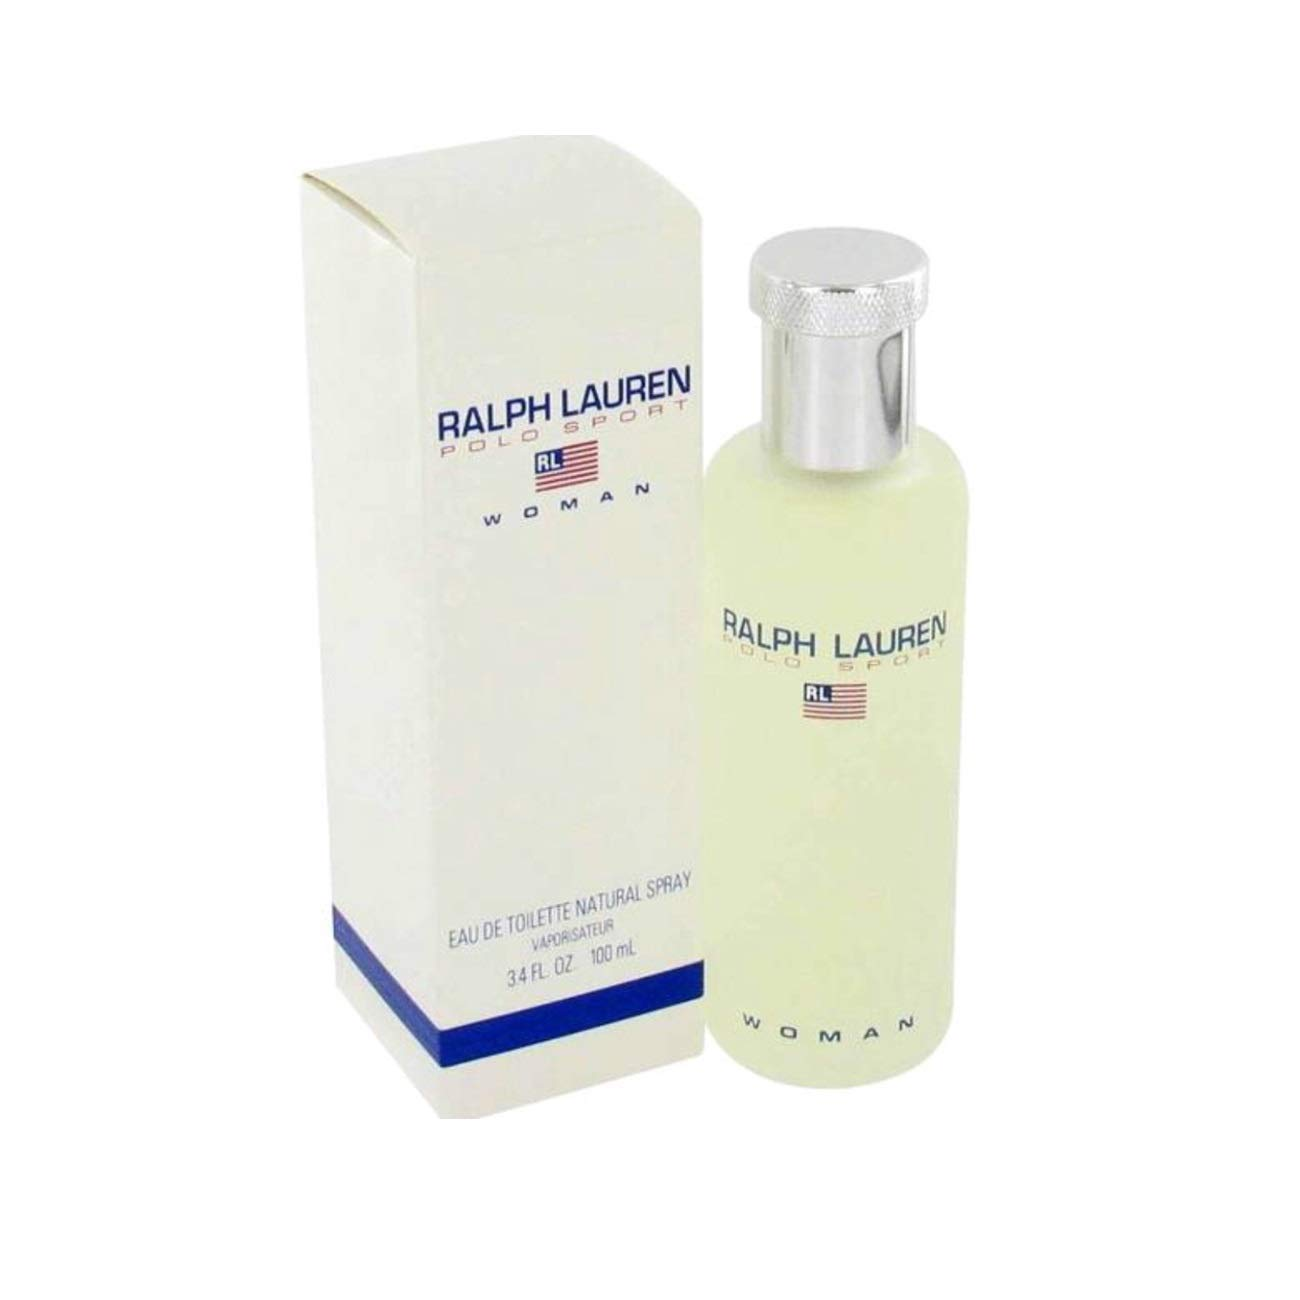 RALPH LAUREN POLO SPORT WOMAN EAU DE TOILETTE 100ML VAPO,: Amazon ...